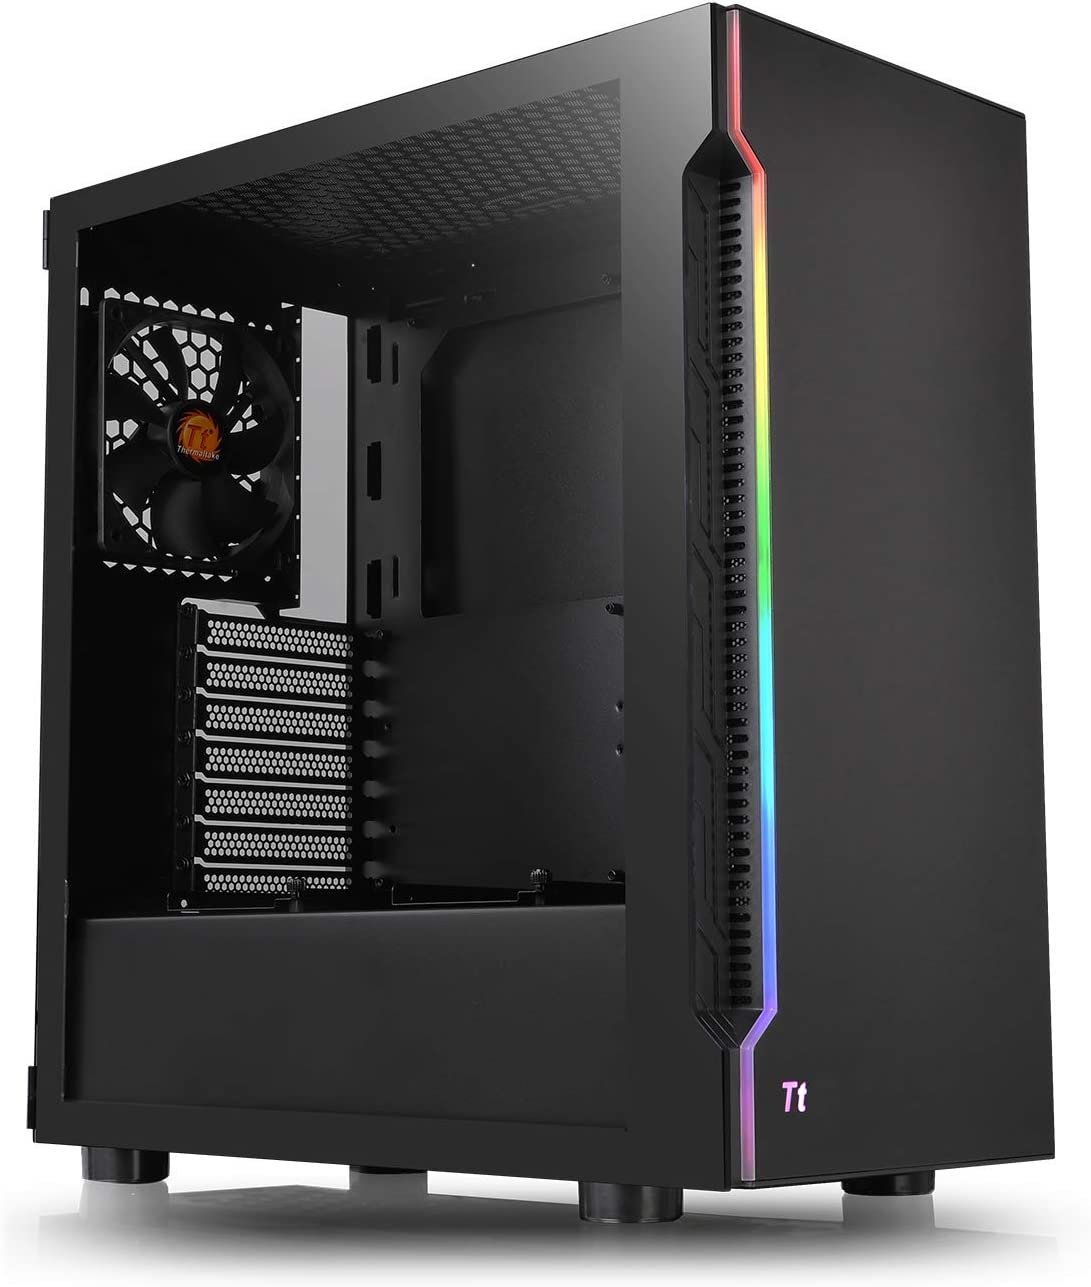 Thermaltake H200 Tempered Glass RGB Light Strip ATX Mid Tower Case with One 120mm Rear Fan Pre-Installed CA-1M3-00M1WN-03